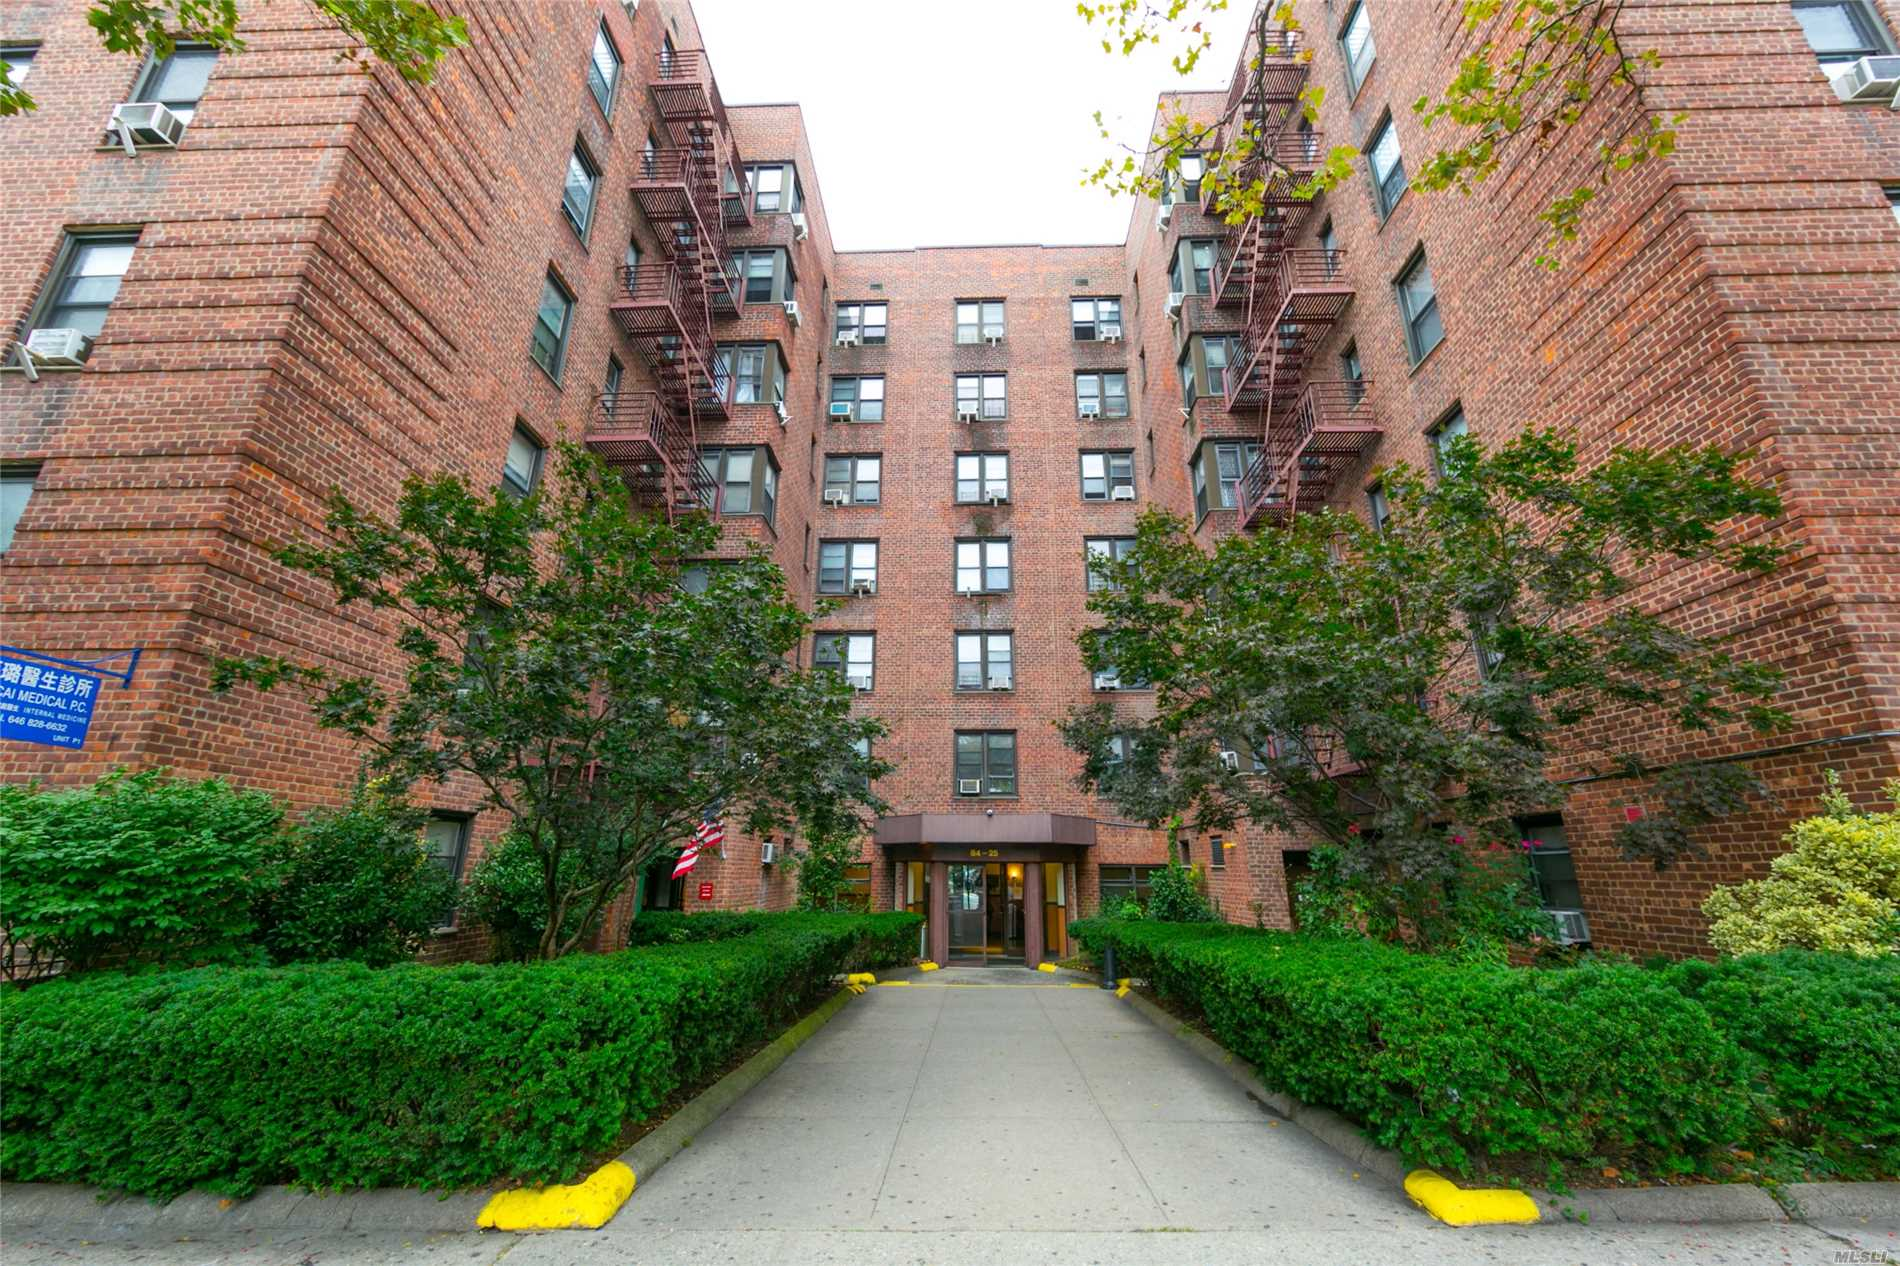 Property for sale at 84-25 Elmhurst Avenue # 5U, Elmhurst NY 11373, Elmhurst,  New York 11373